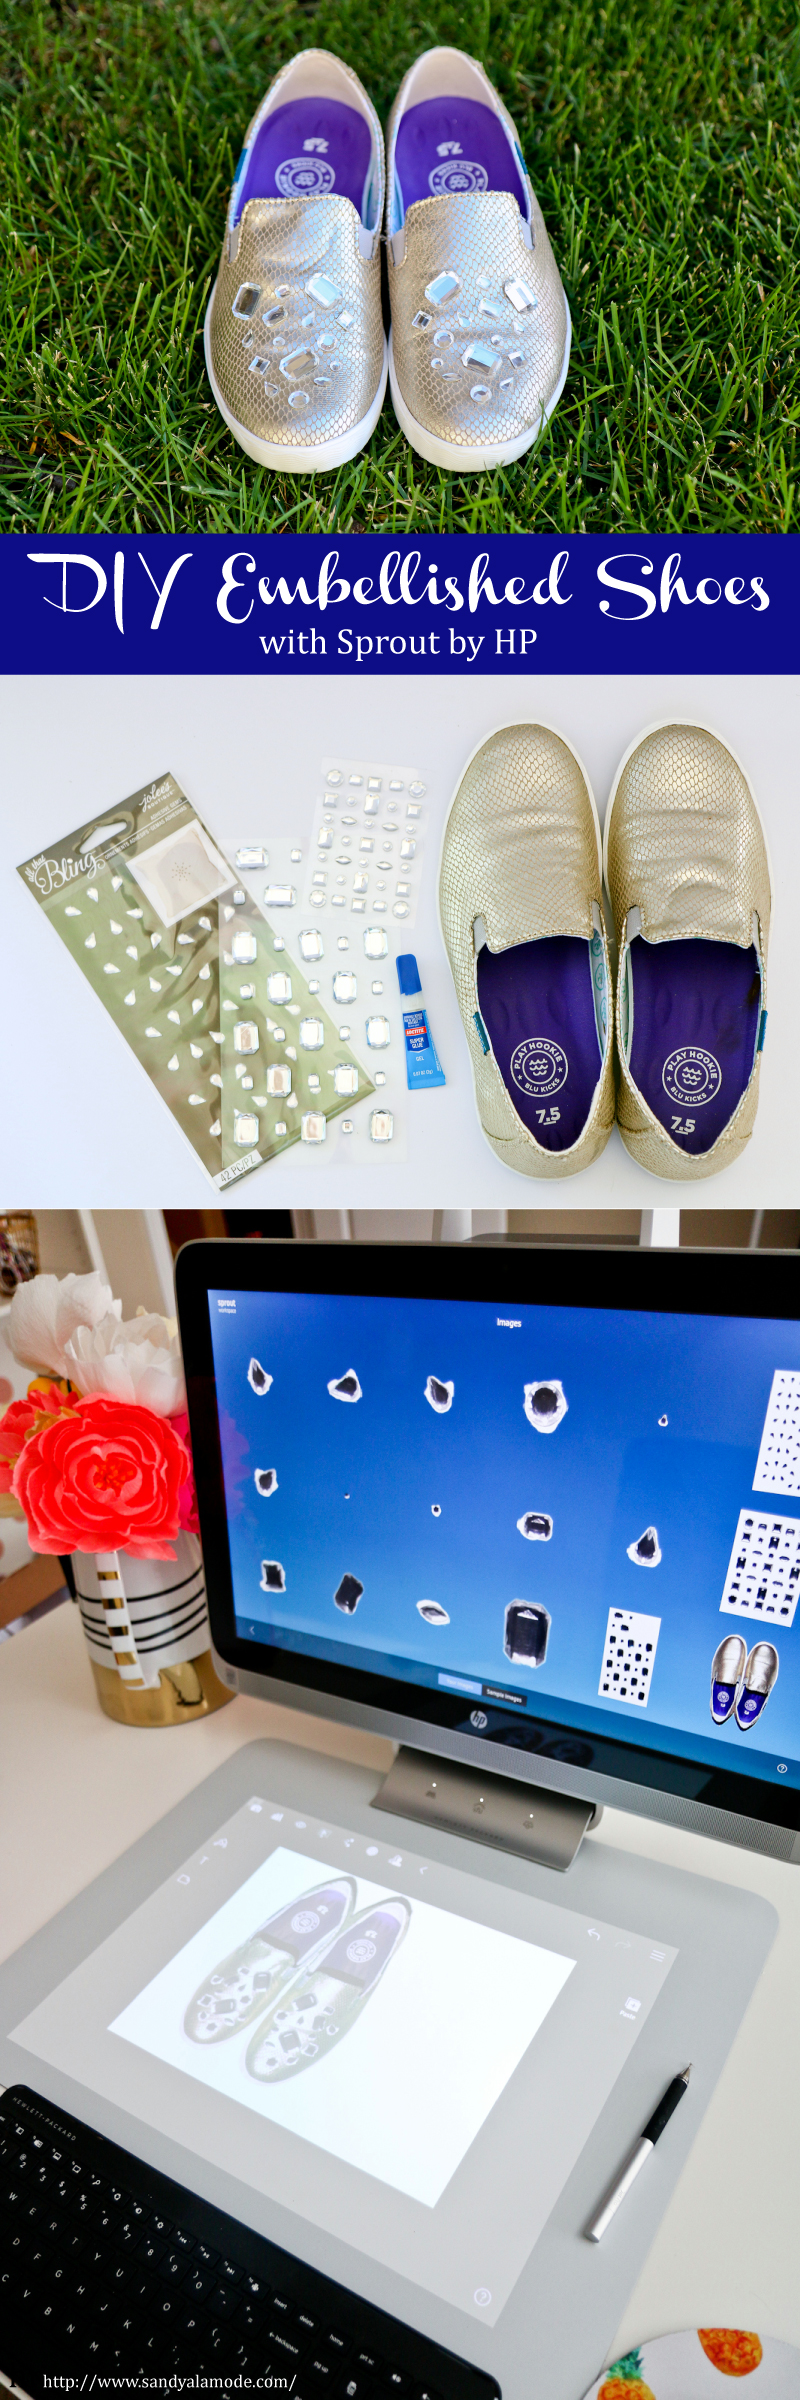 Sandy a la Mode | DIY Embellished Shoes with Sprout by HP